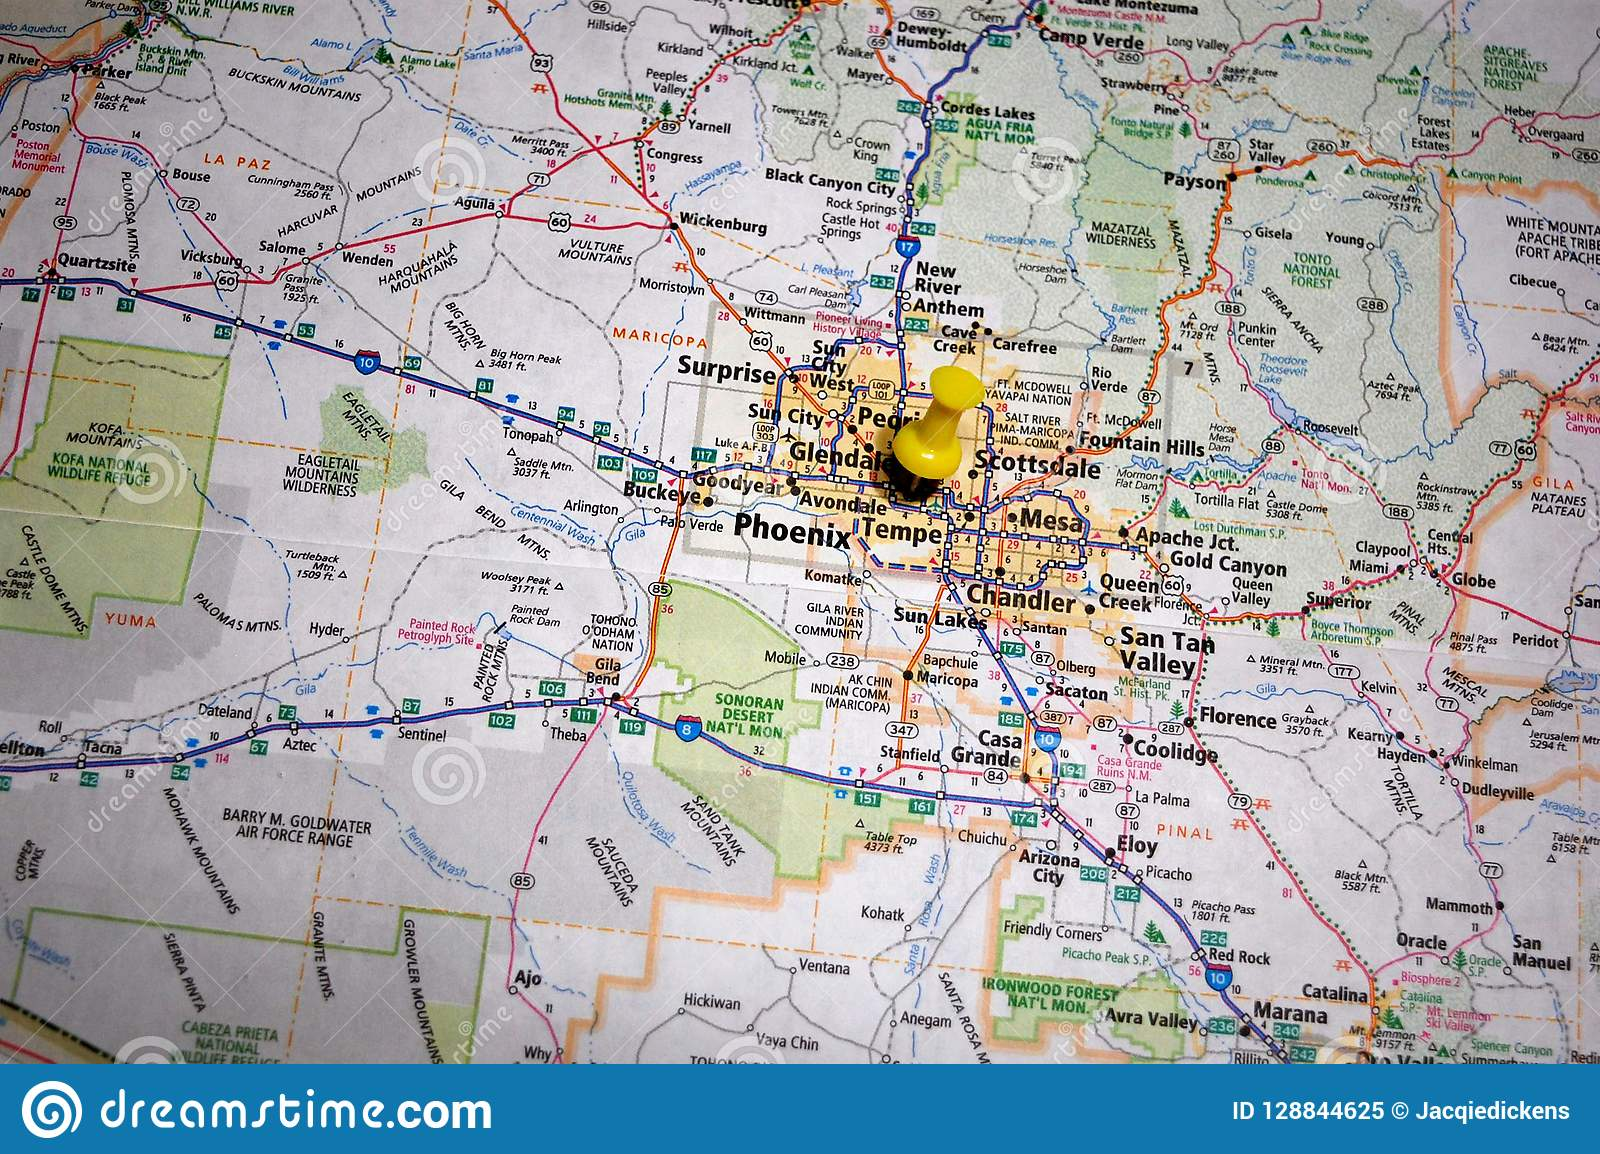 A Map Of Phoenix Arizona.Phoenix Arizona Stock Image Image Of Explore Geography 128844625